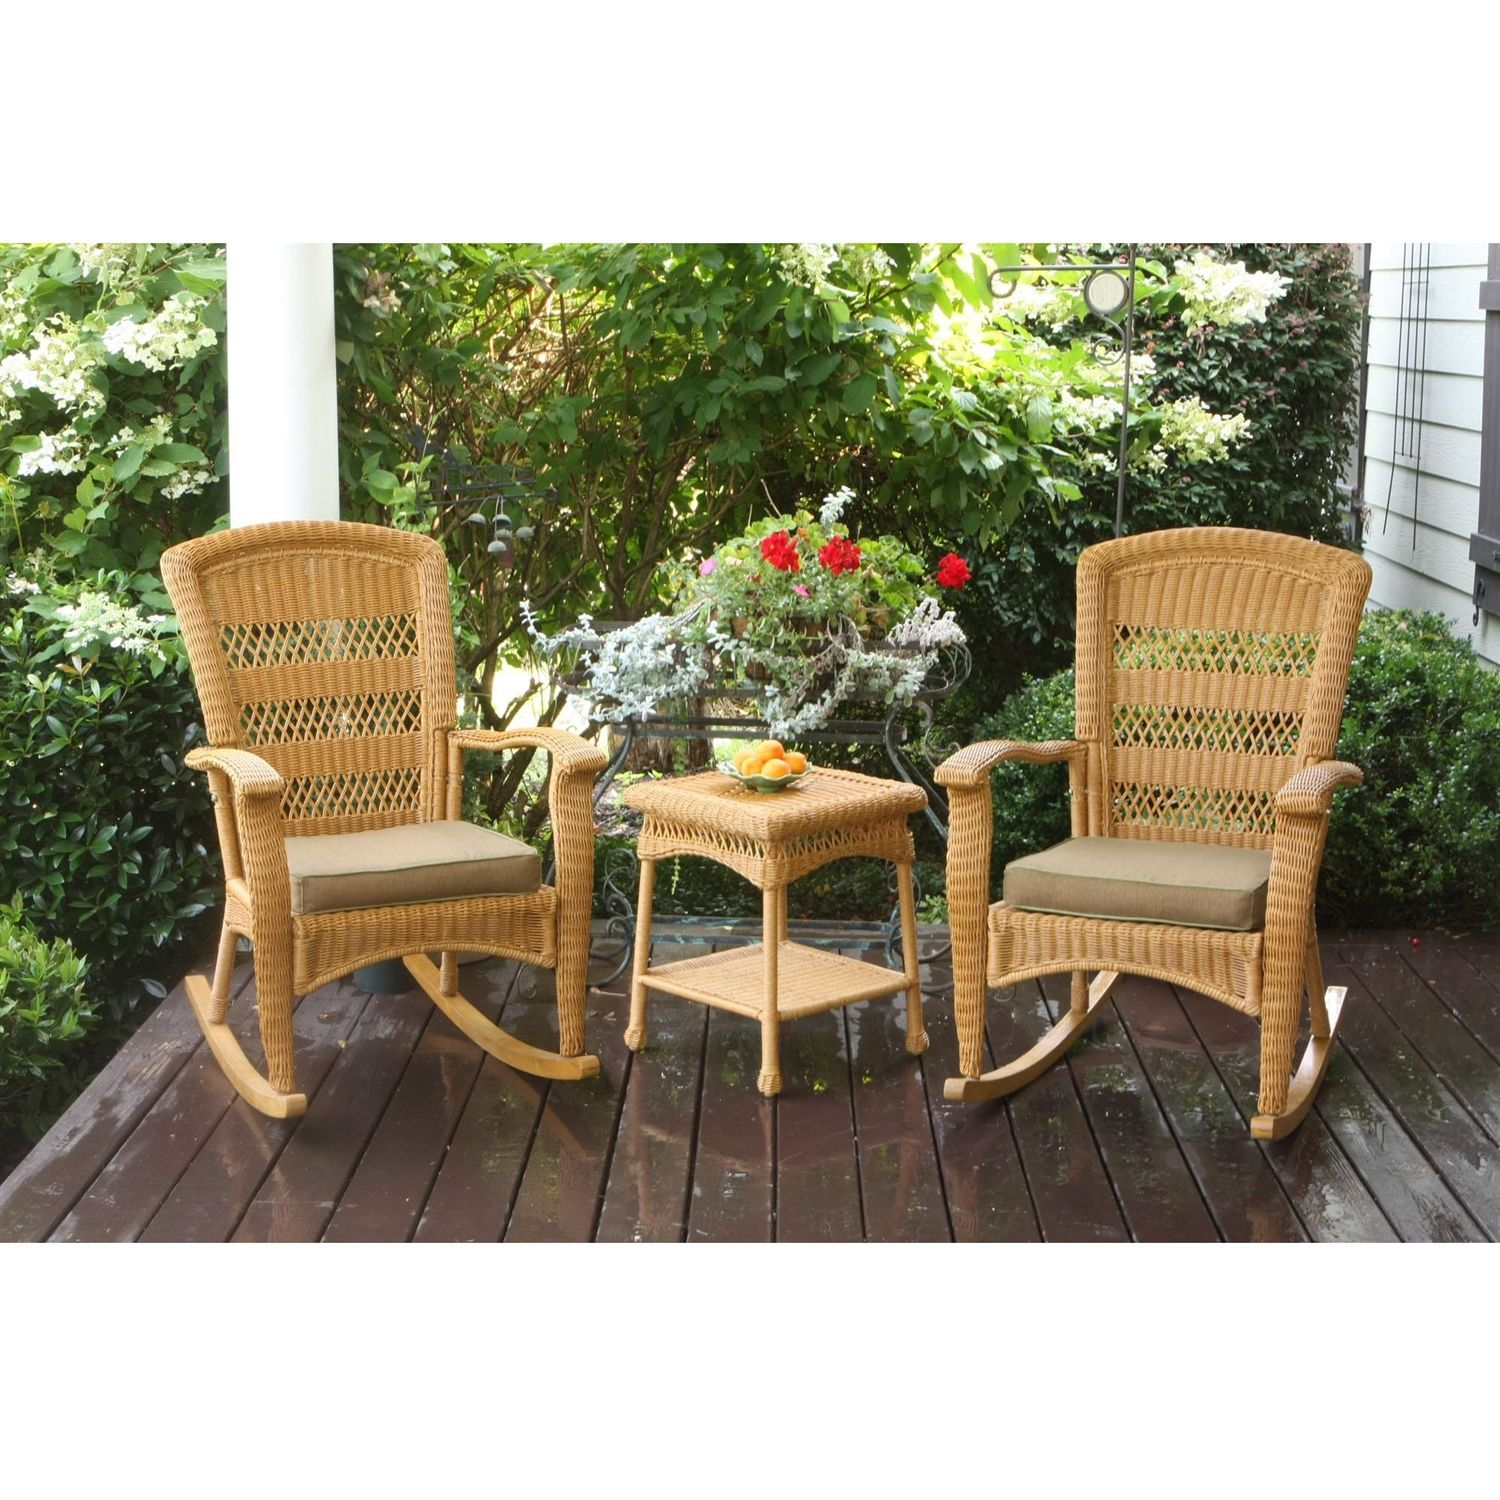 Tortuga 3PC Outdoor Porch Rocker Set 2 Amber Resin Wicker Rocking Chairs U0026  Table